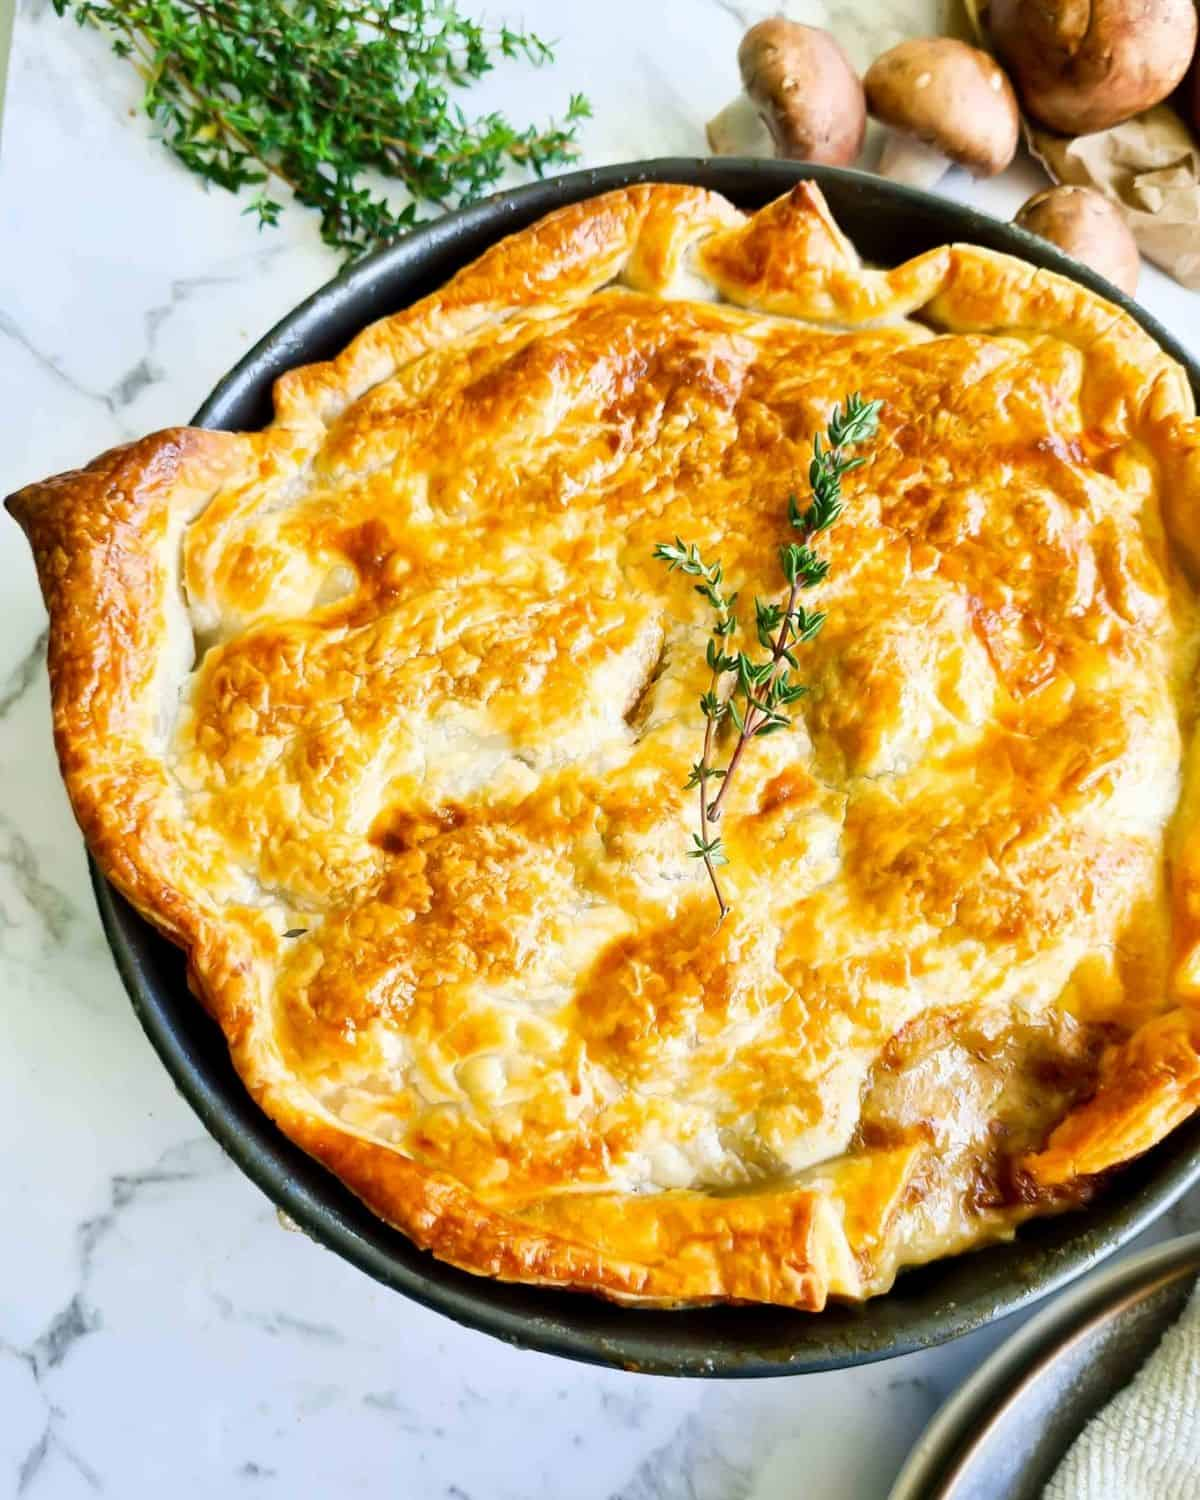 Freshly baked, golden and flaky chicken pot pie